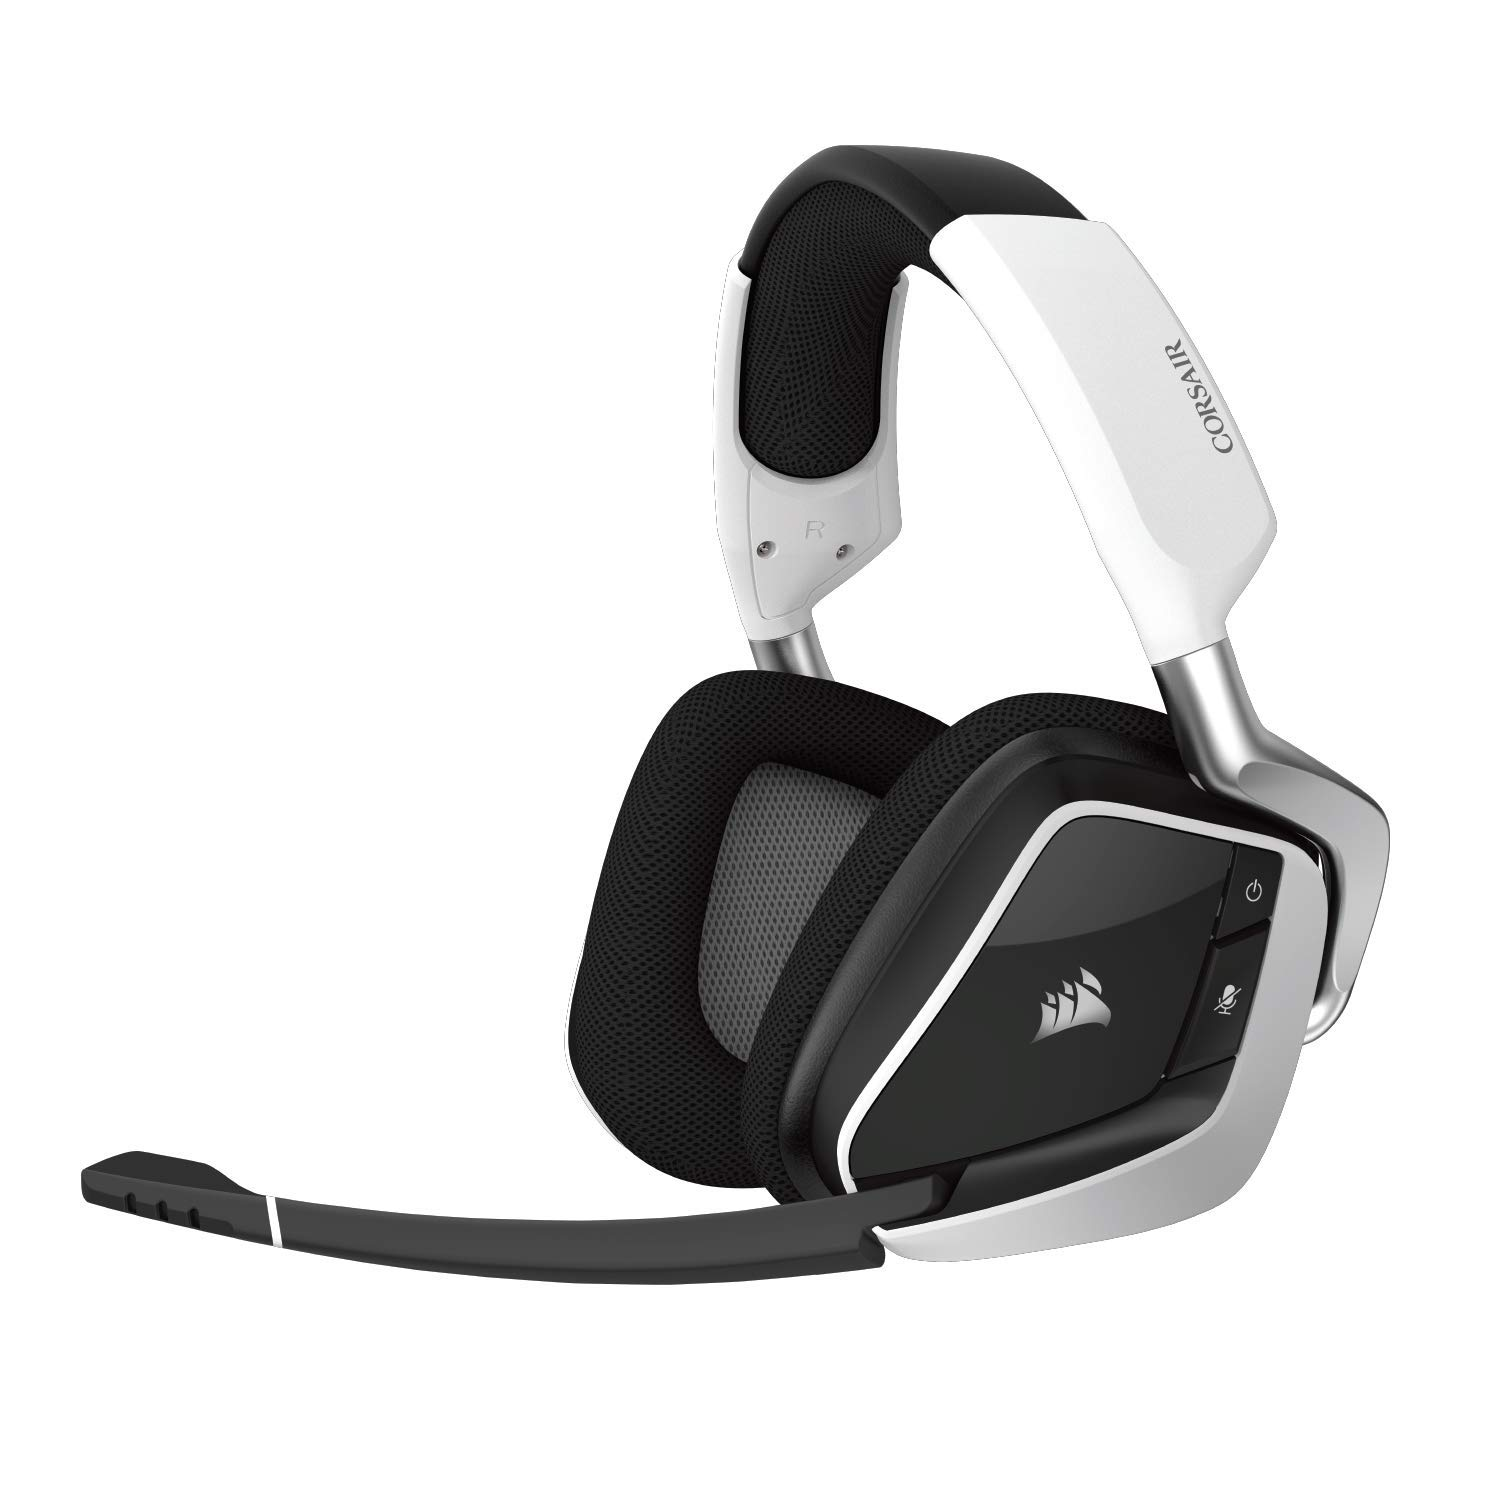 31c7b627cdb CORSAIR VOID PRO RGB Wireless Gaming Headset with DOLBY HEADPHONE 7.1  Surround Sound for PC - White: Amazon.ca: Computers & Tablets